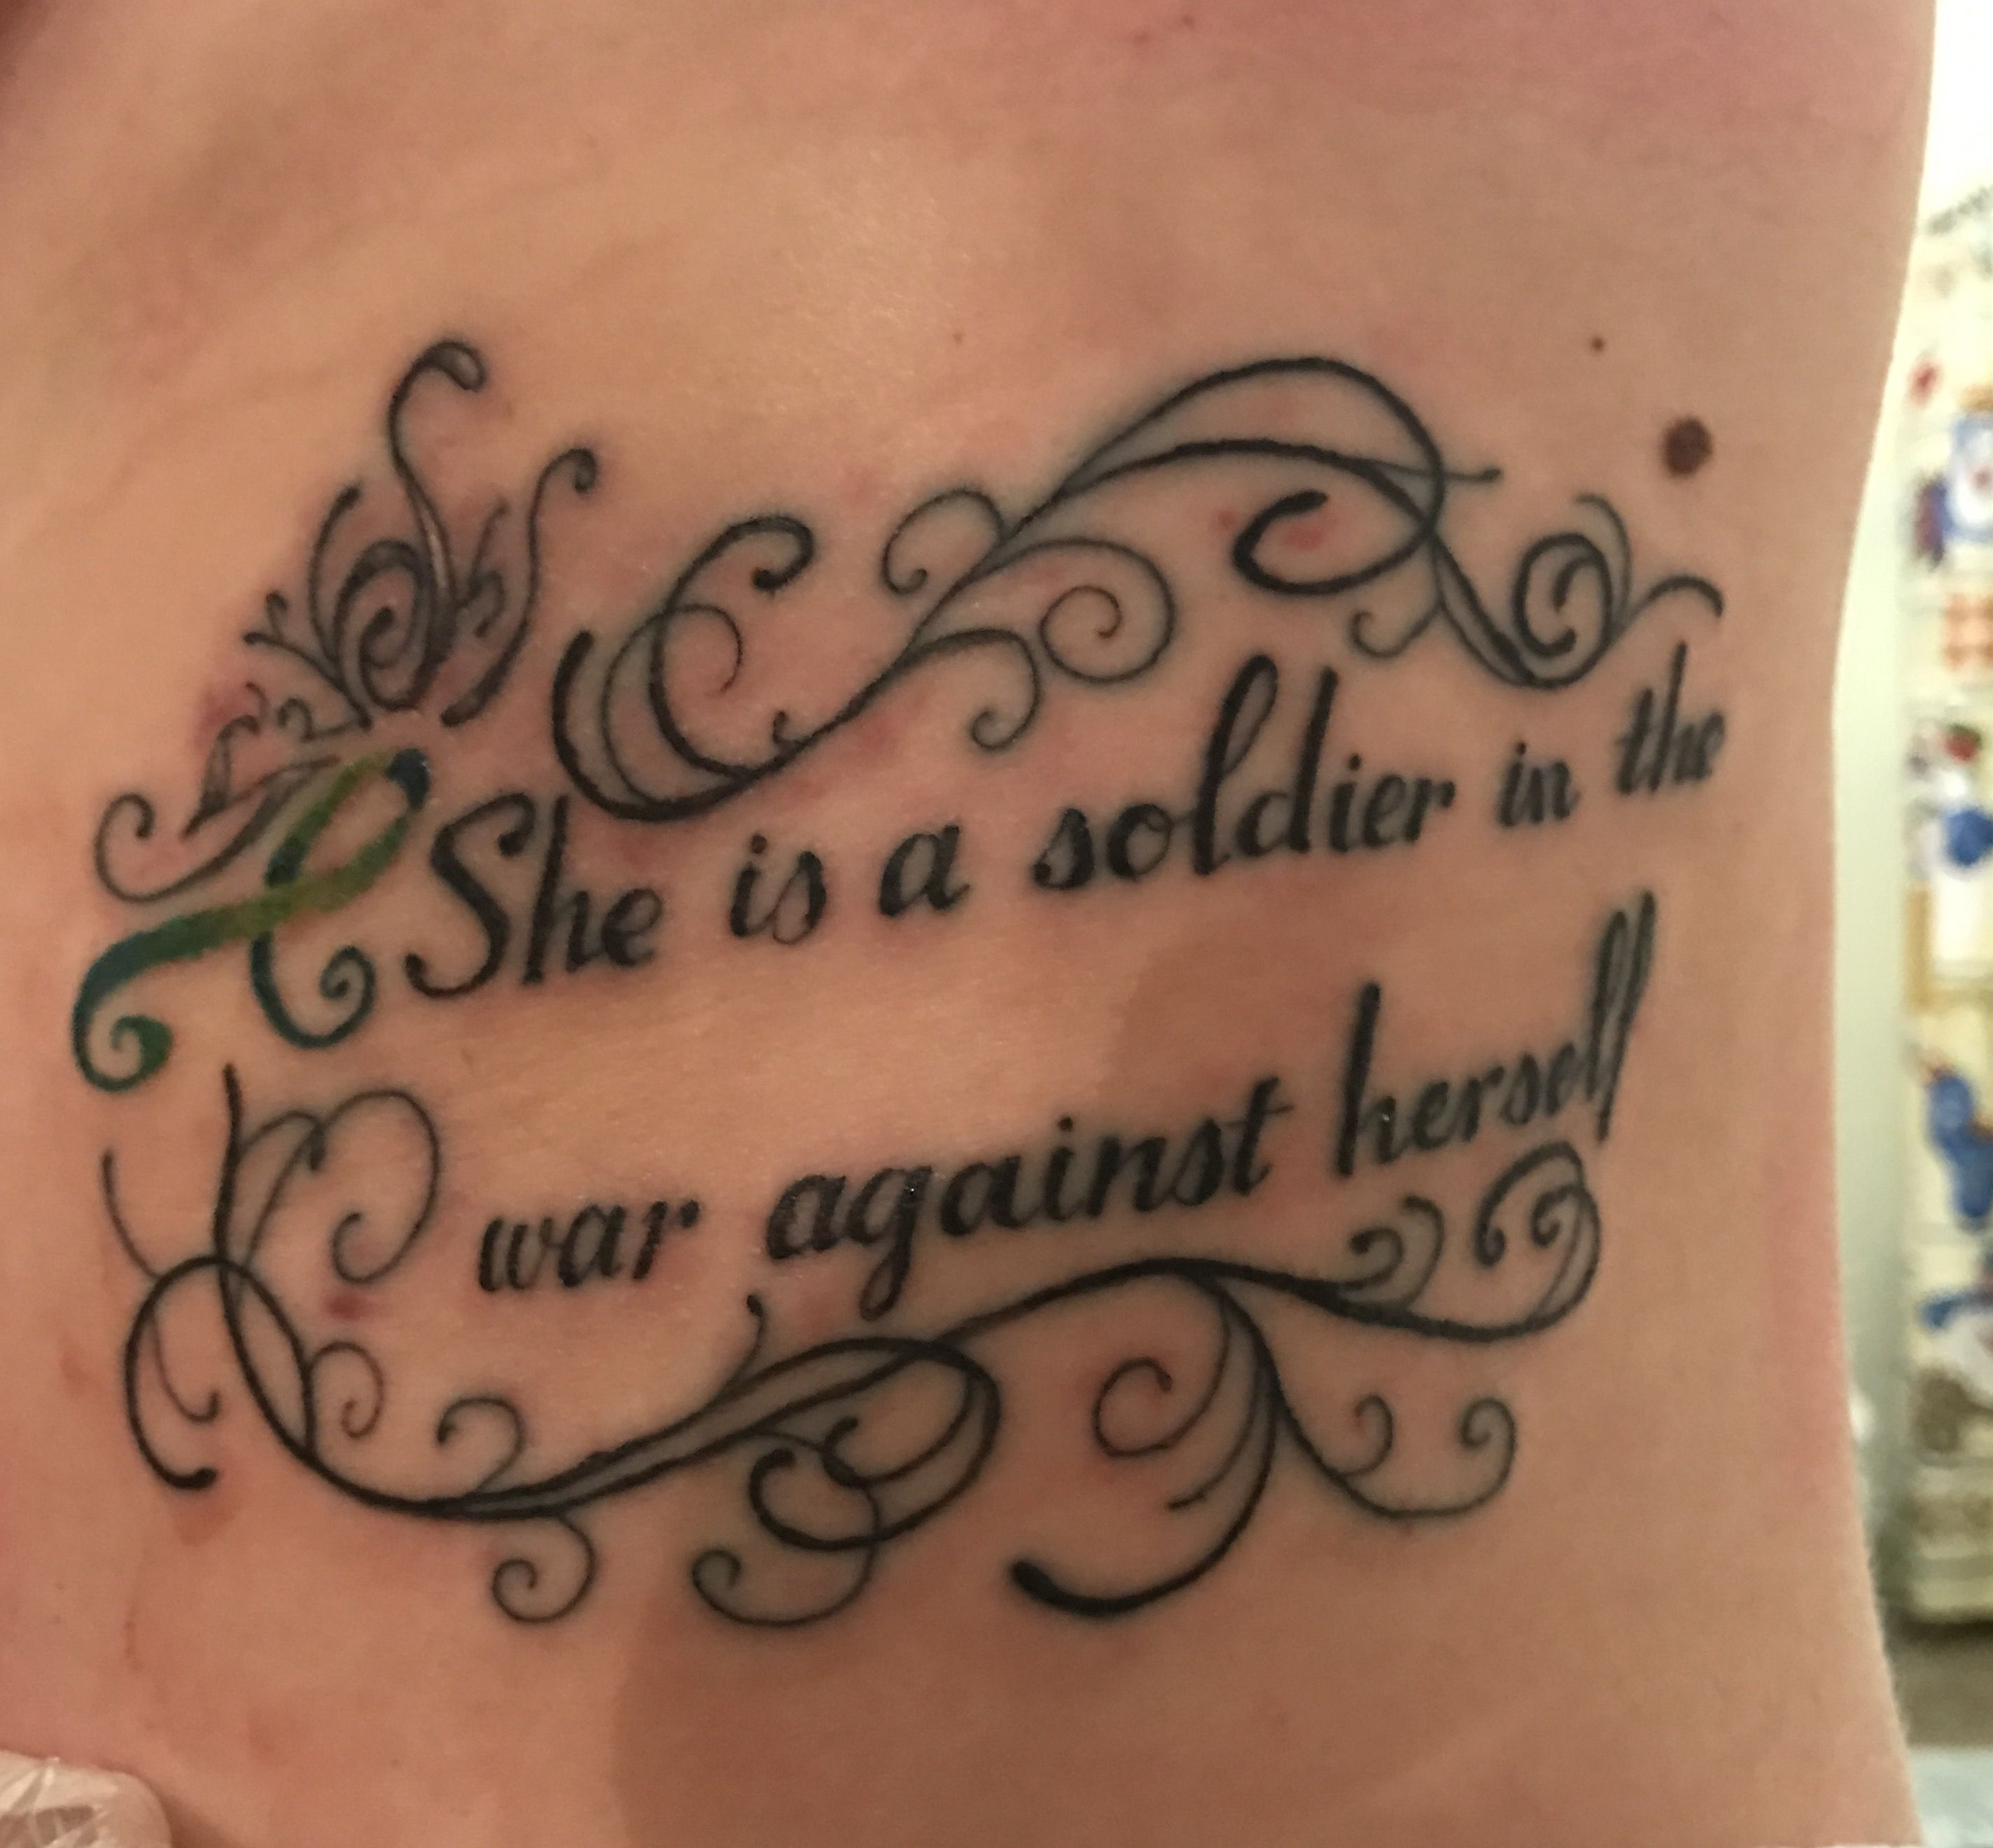 Bipolar Quote Tattoo #BPD She Is A Soldier In The War